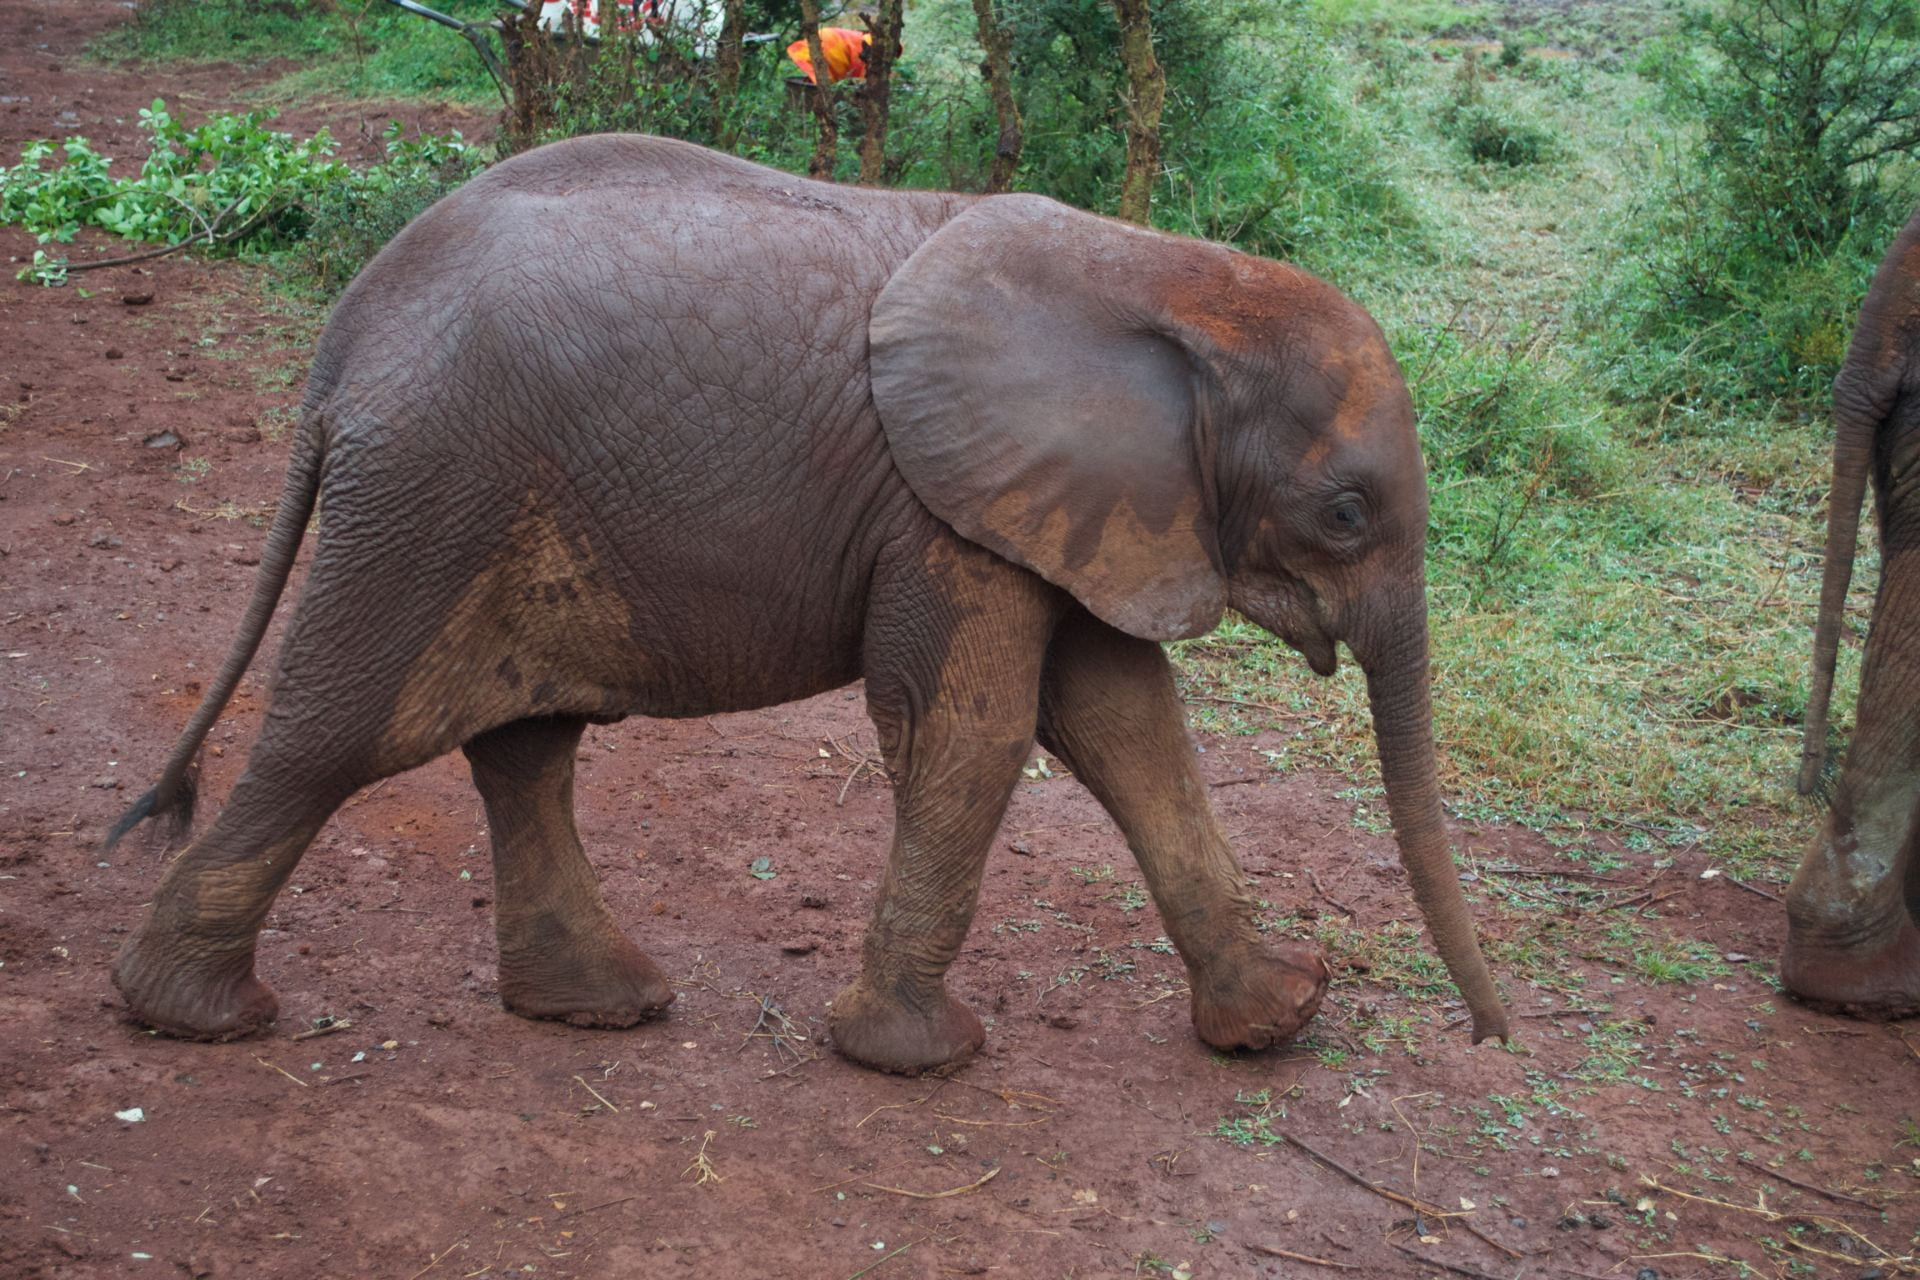 A juvenile African bush elephant at the David Sheldrick Wildlife Trust.